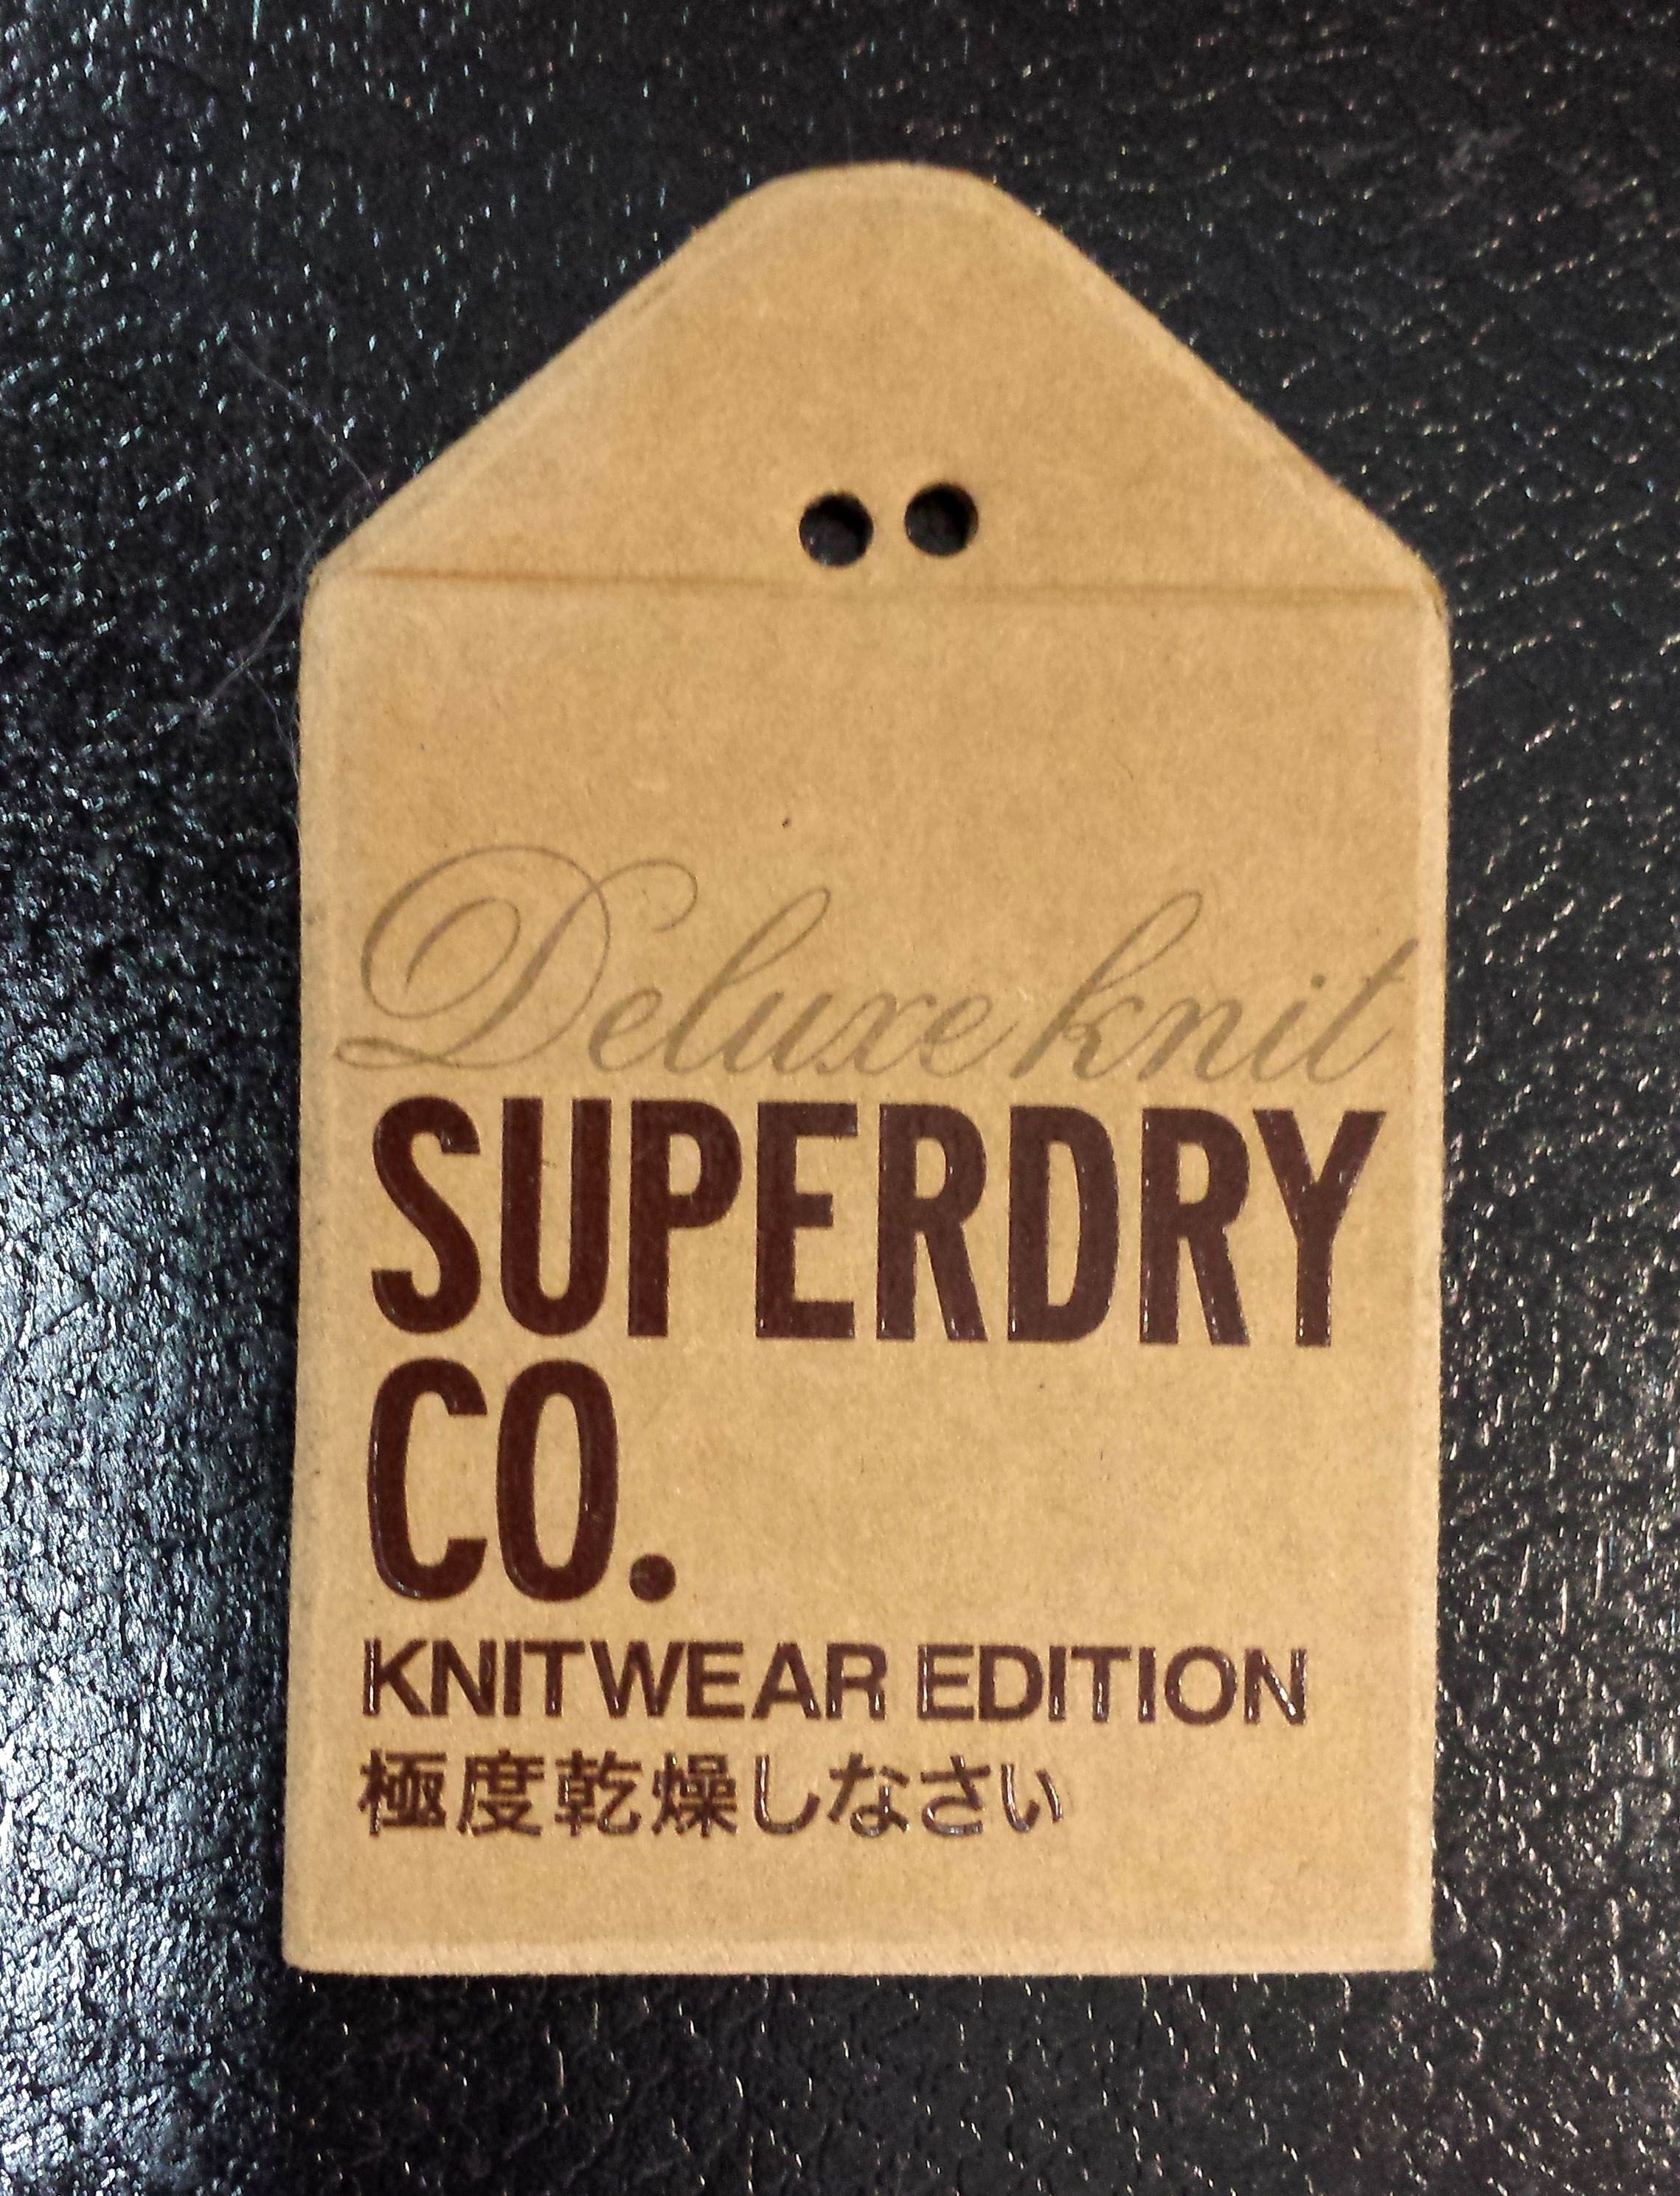 SUPERDRY CO. #hangtag | Hang tags | Etiquetas